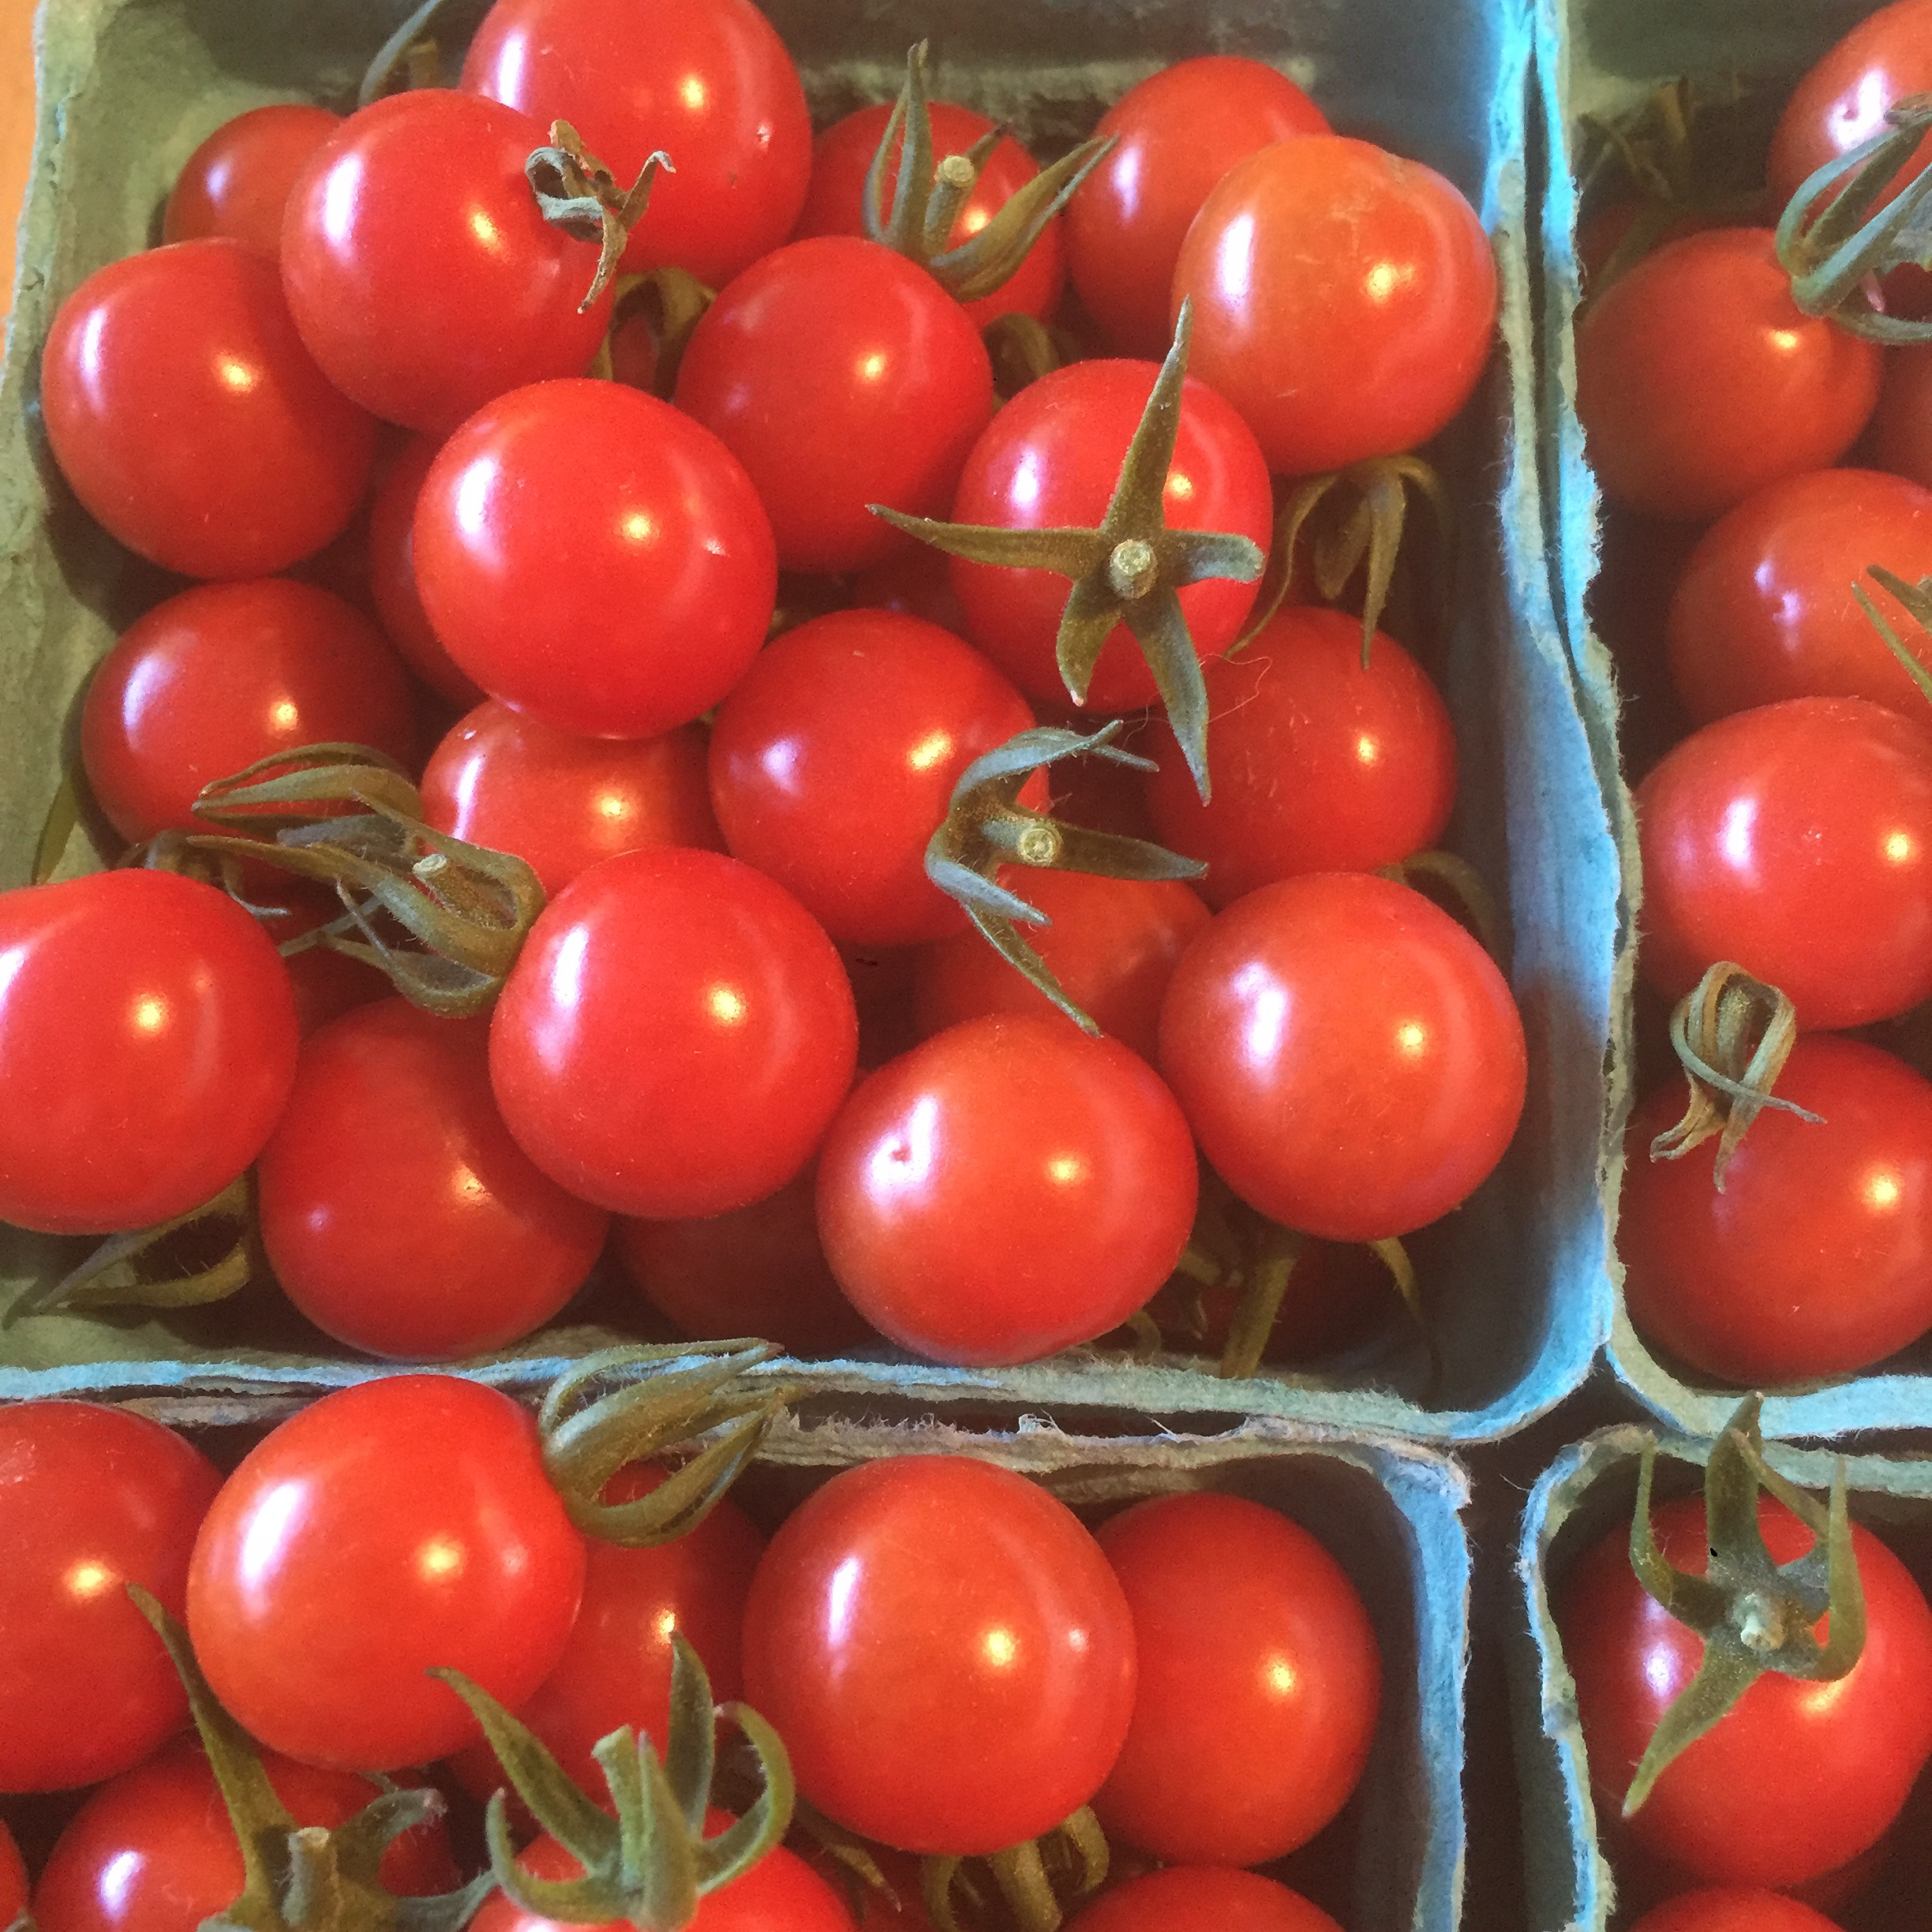 Our red cherry tomatoes are pretty good too.